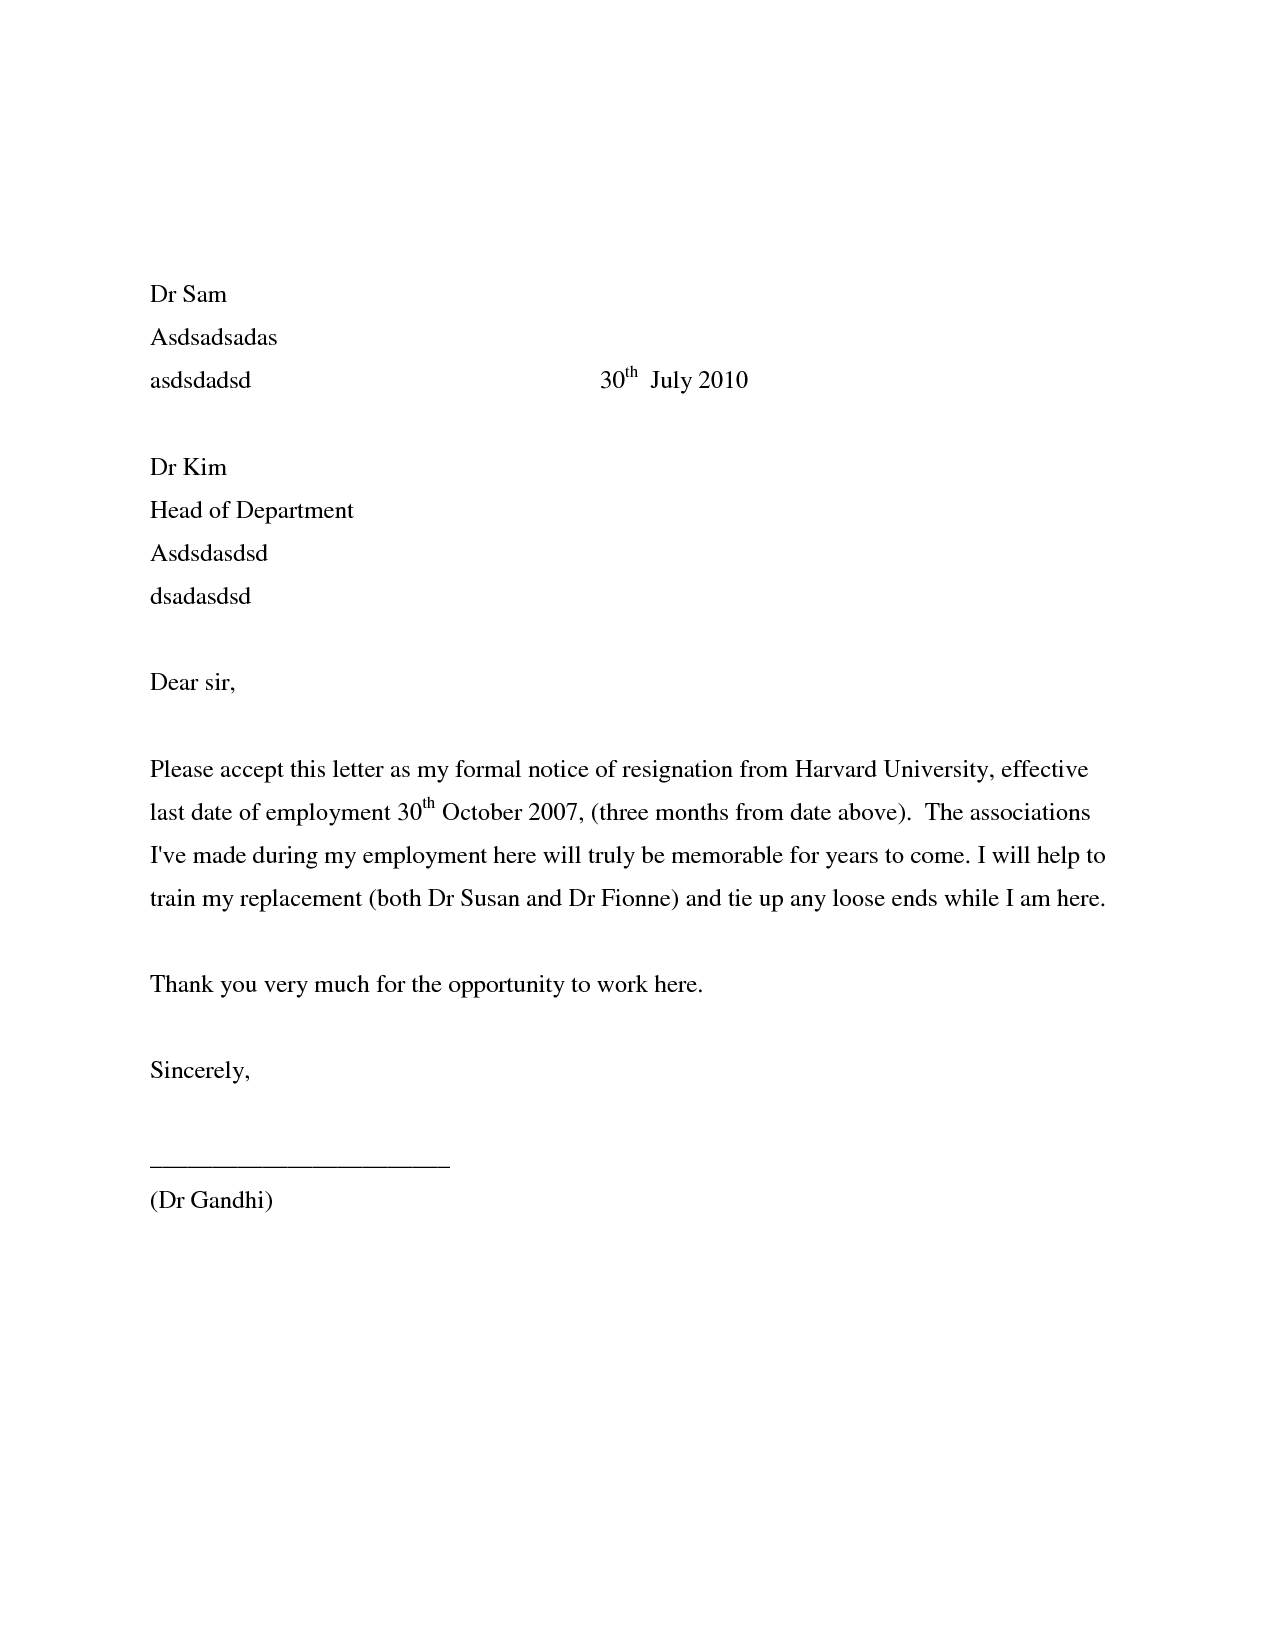 Simple Resignation Letters Examples SeeabruzzoWriting A Letter Of